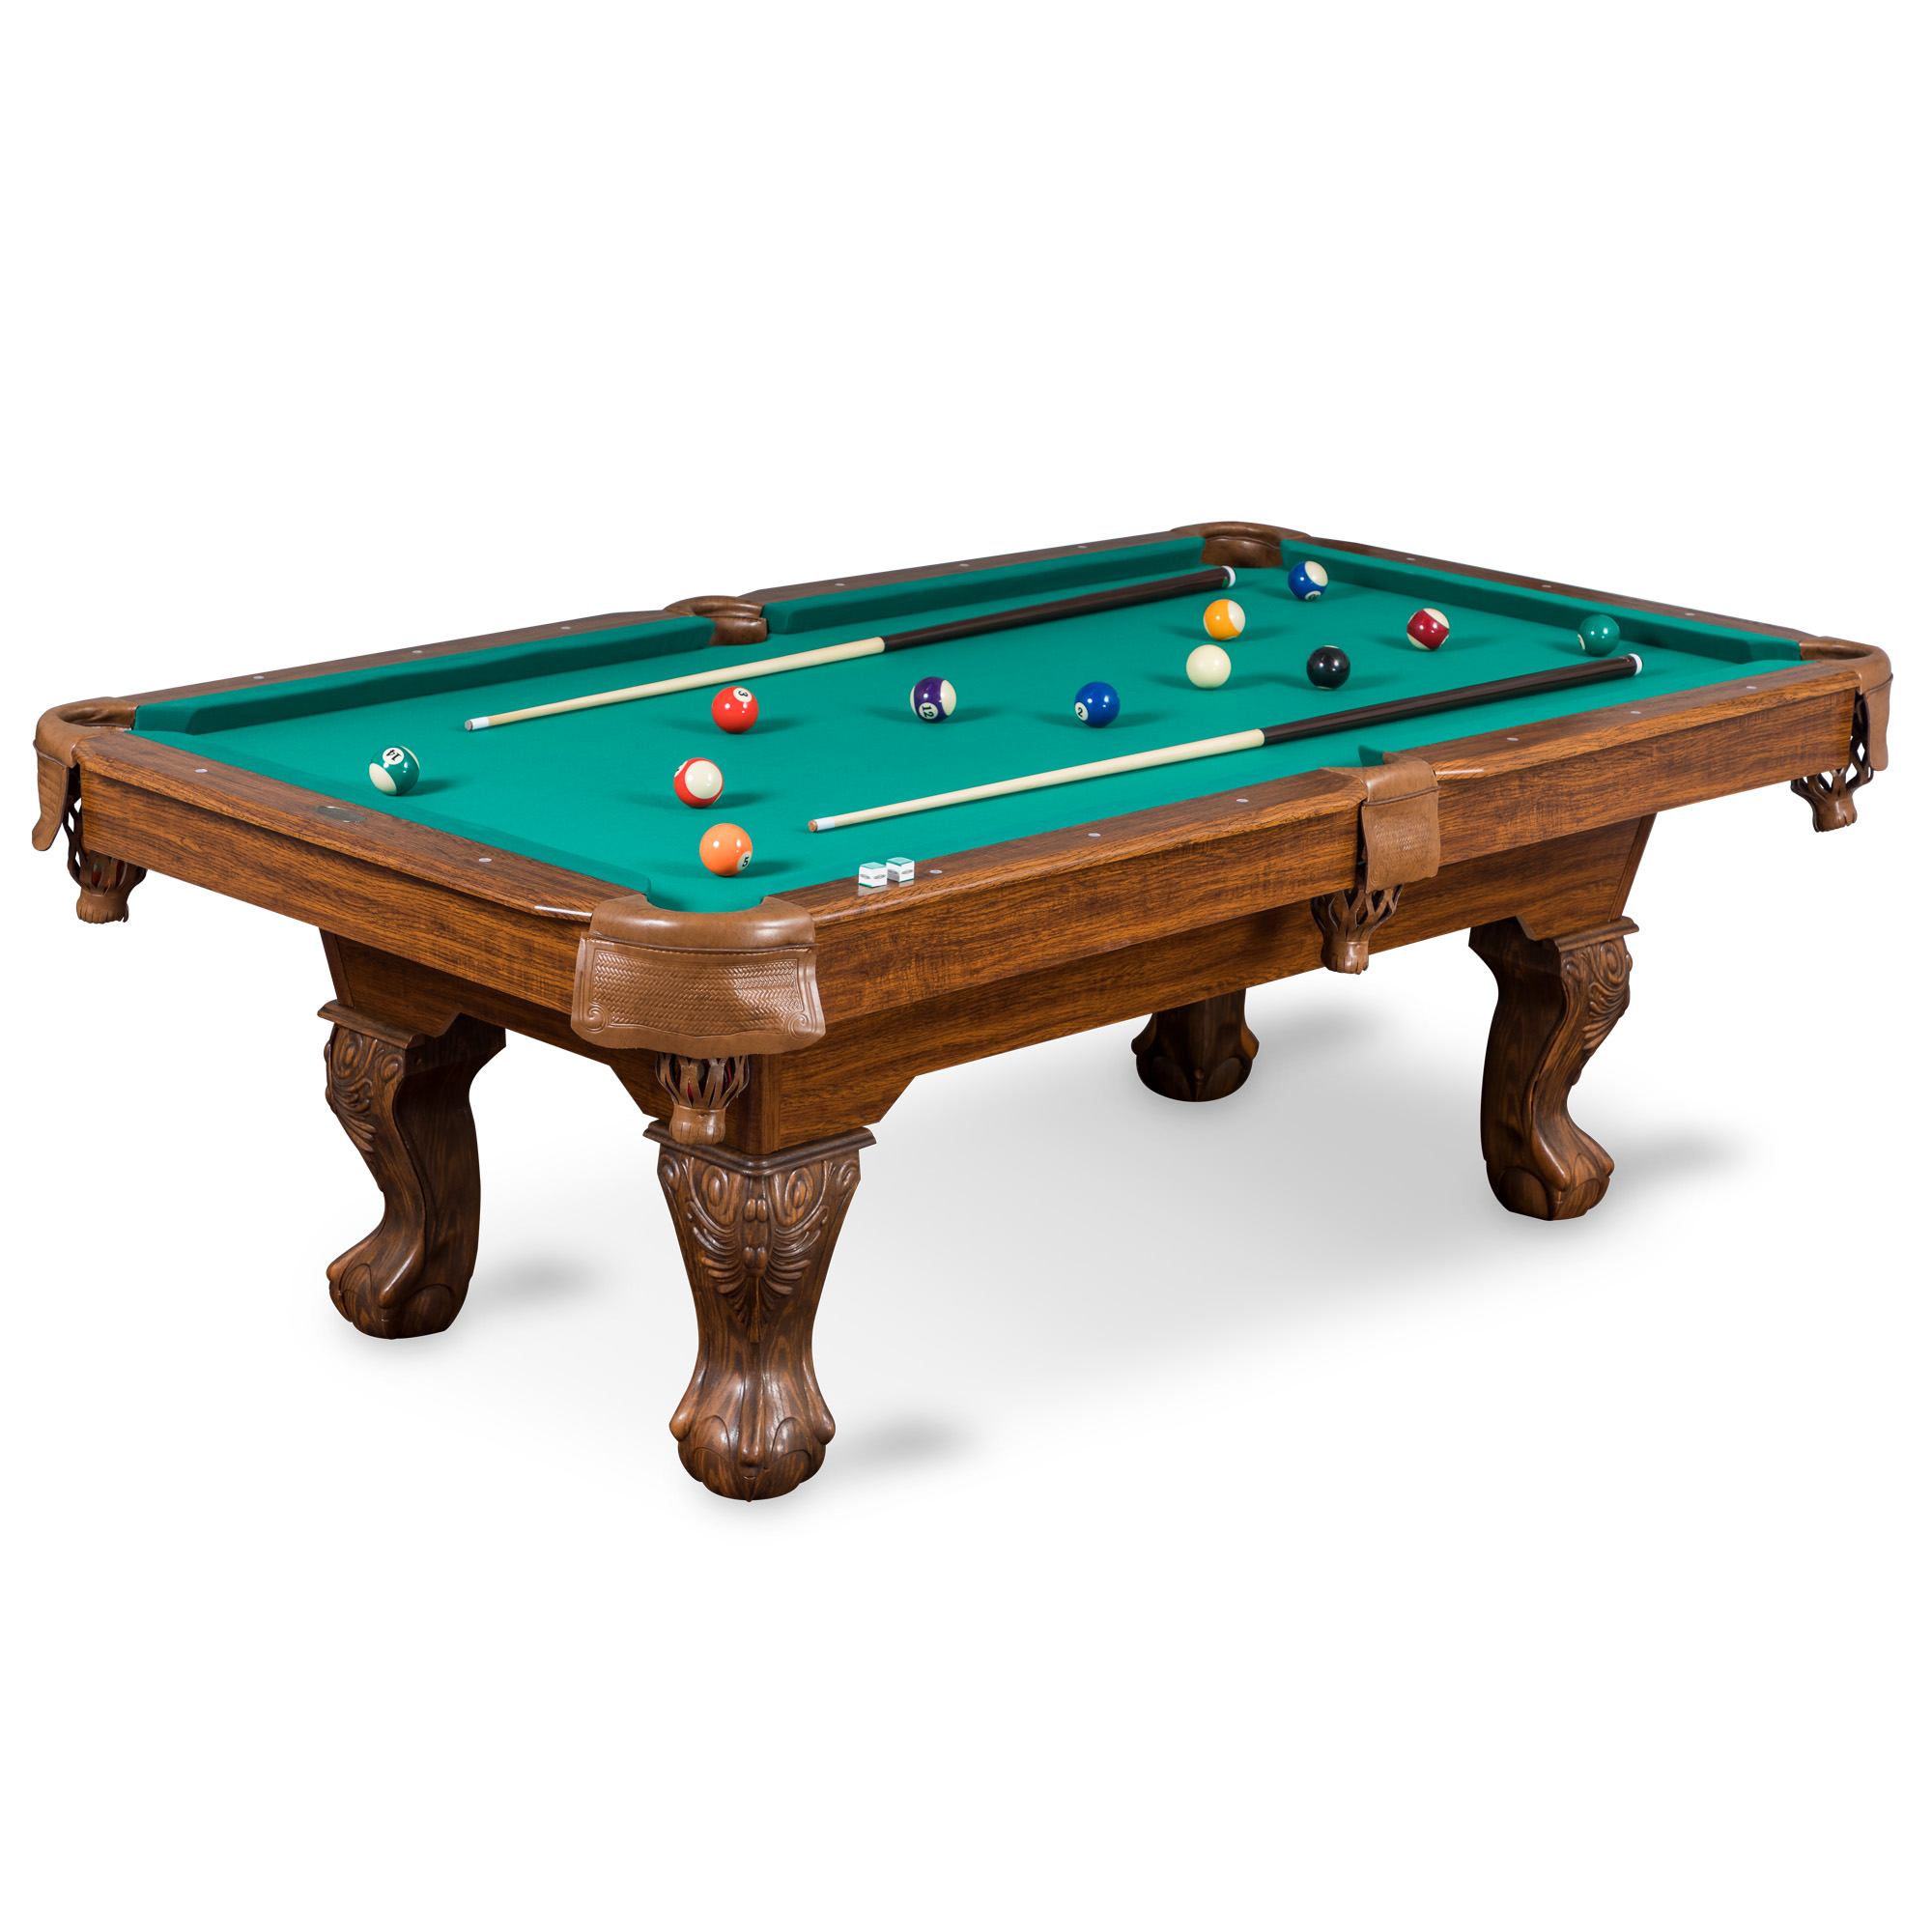 Classic Sport 87-inch (7ft. 3 in.) Brighton Billiard Table, Green